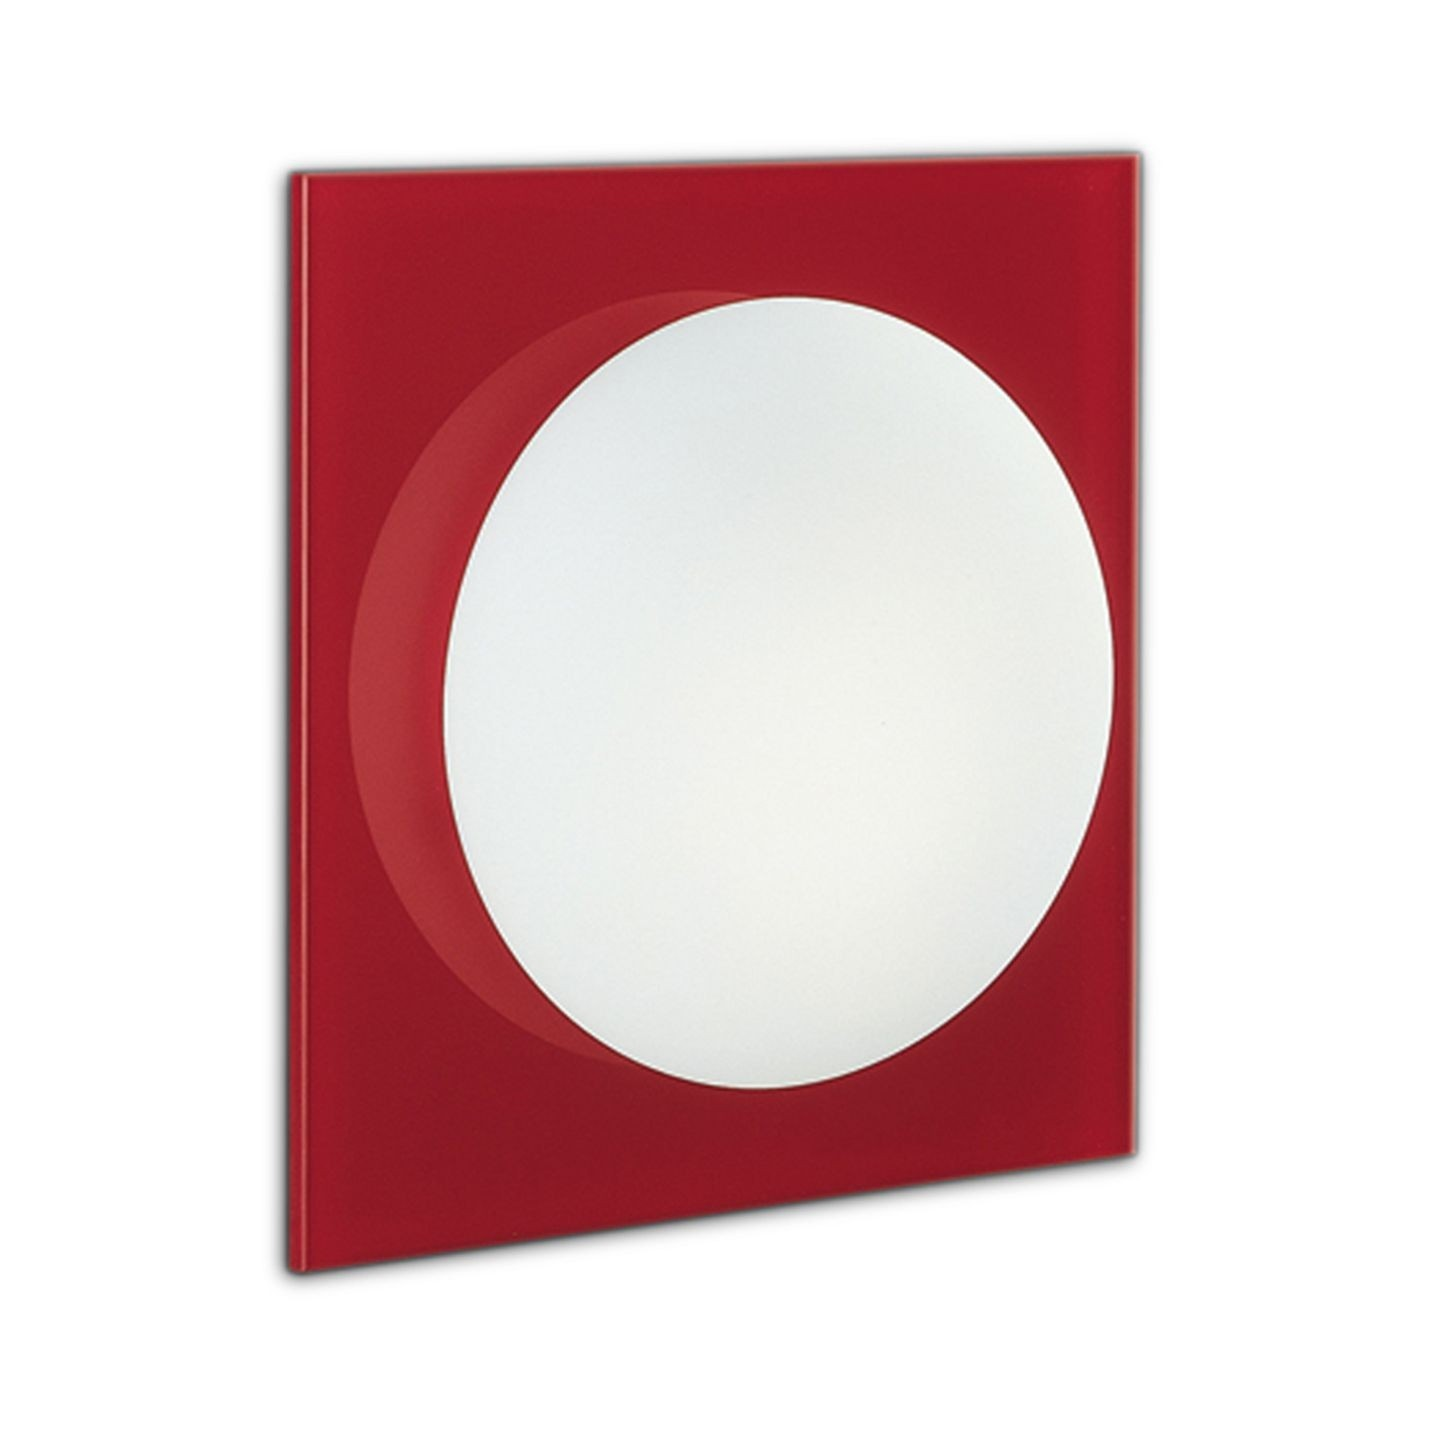 Leucos Giò P-PL 30 Wall/Ceiling Lamp